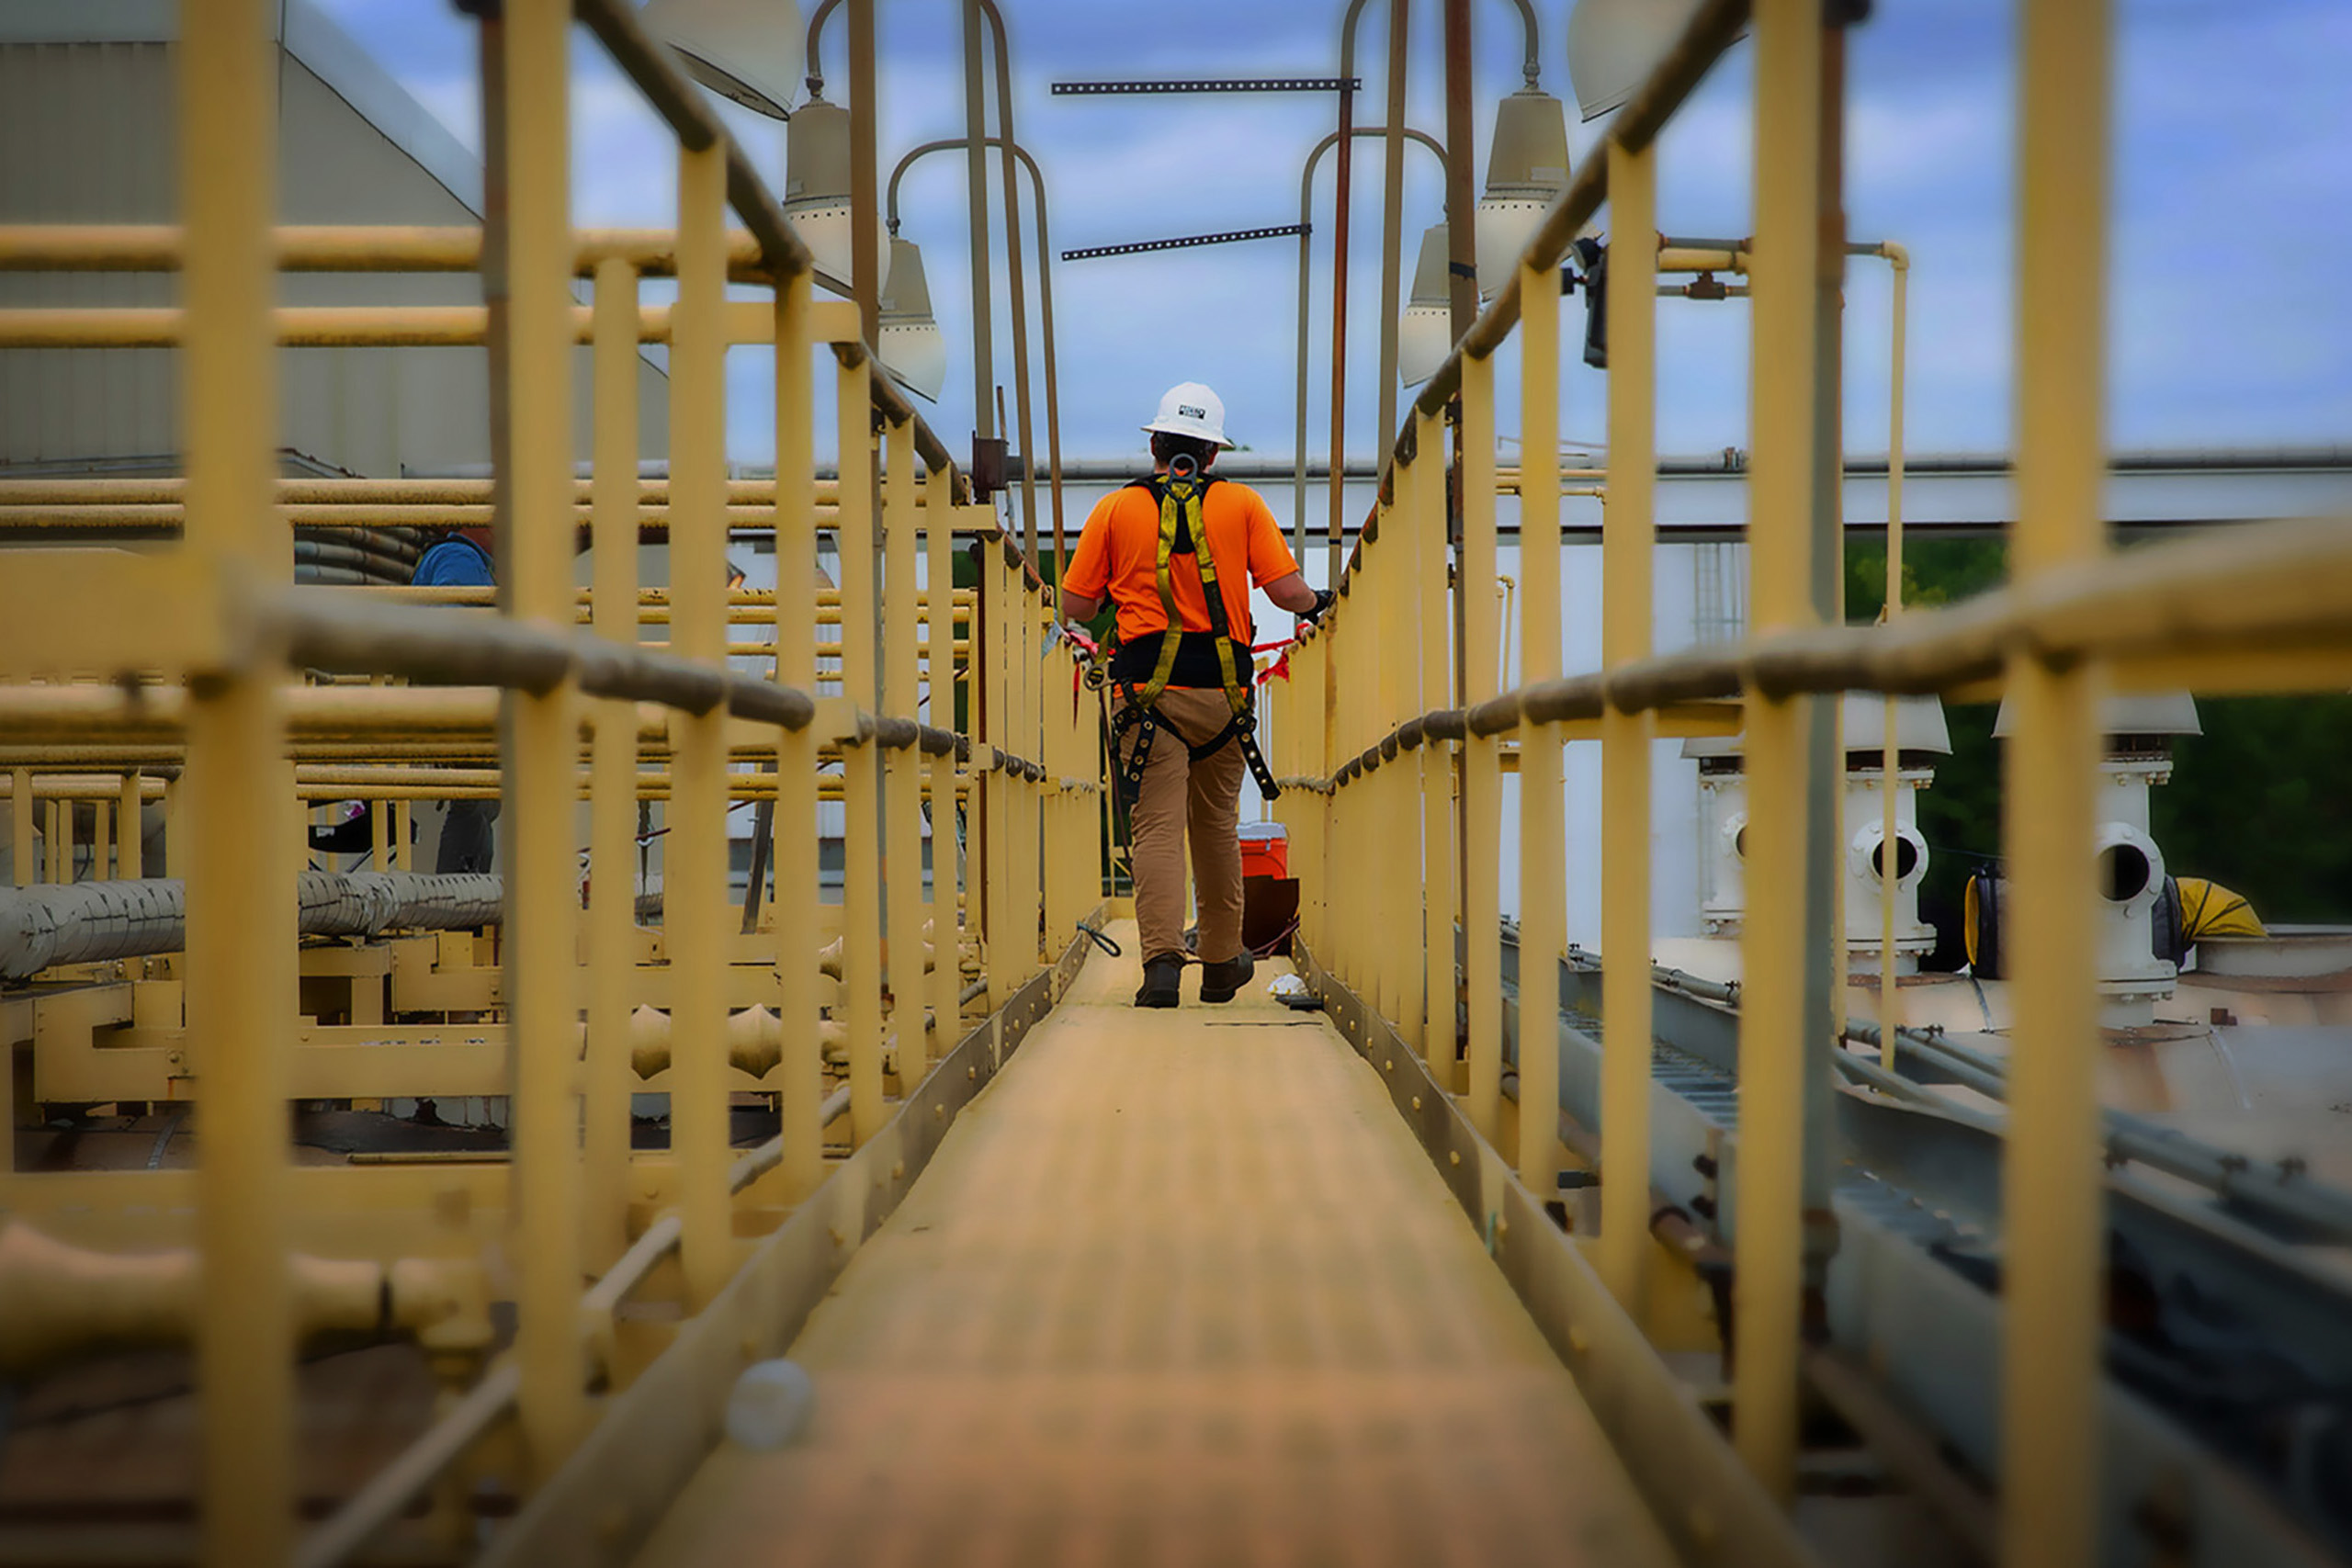 JDI Industrial Services worker high metal walkway